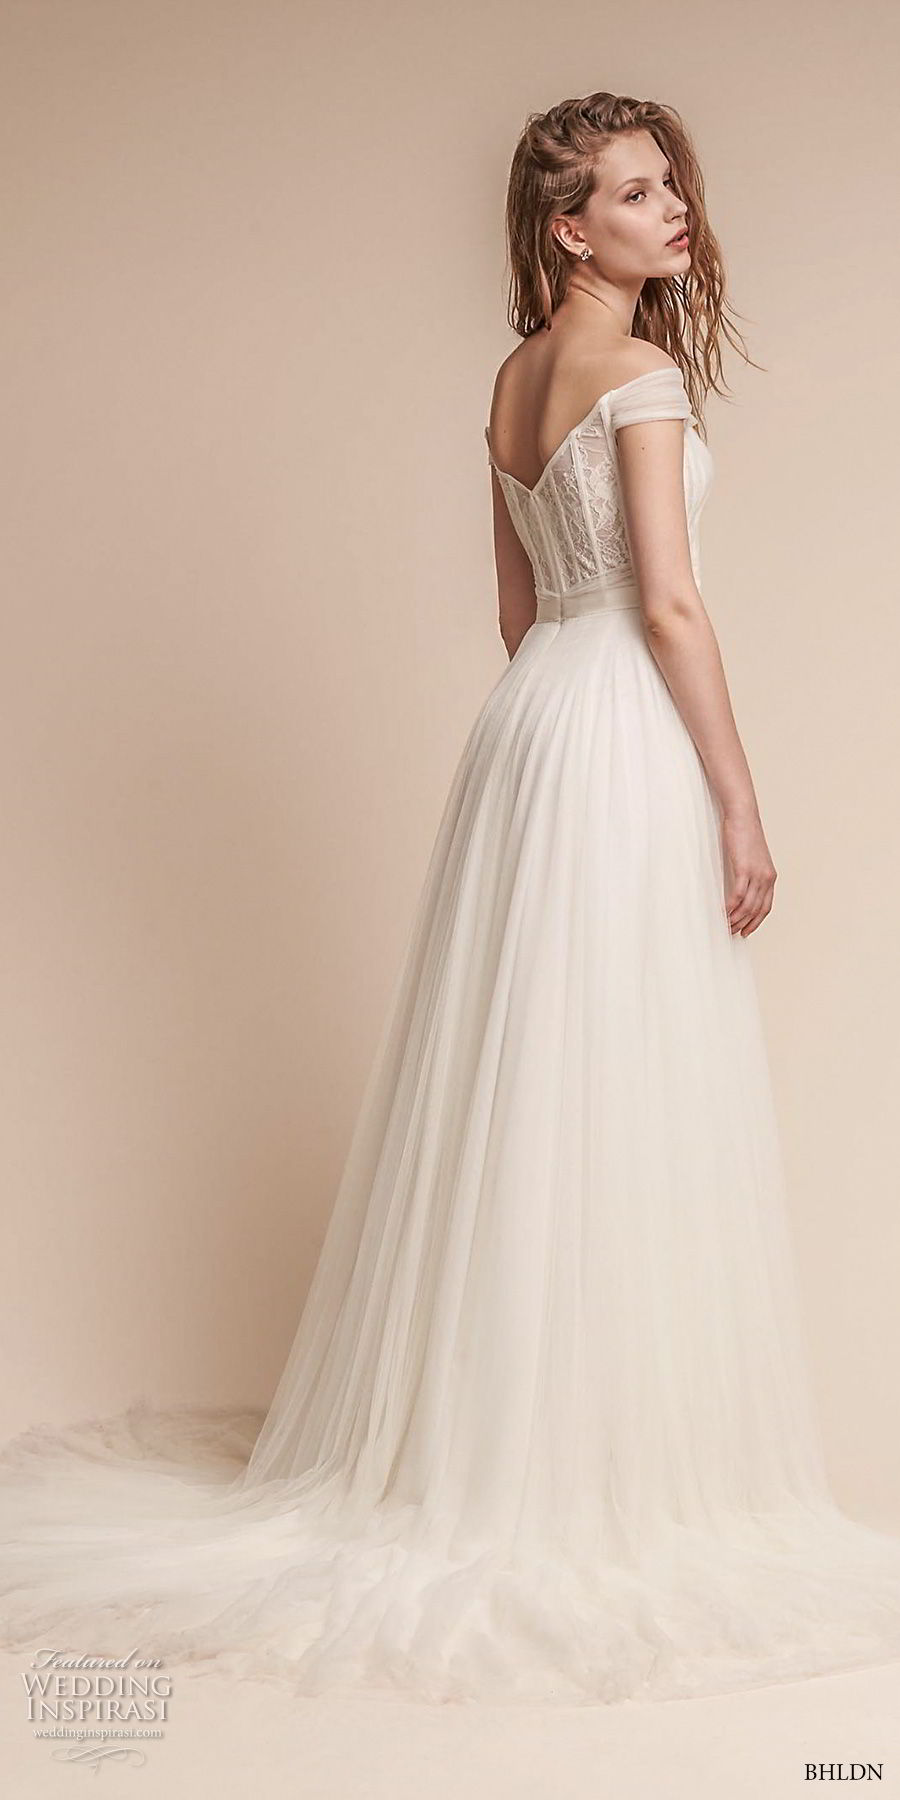 bhldn fall 2017  americana bridal off the shoulder sweetheart neckline ruched bodice tulle skirt romantic soft a  line wedding dress mid v back medium train (heaton) bv